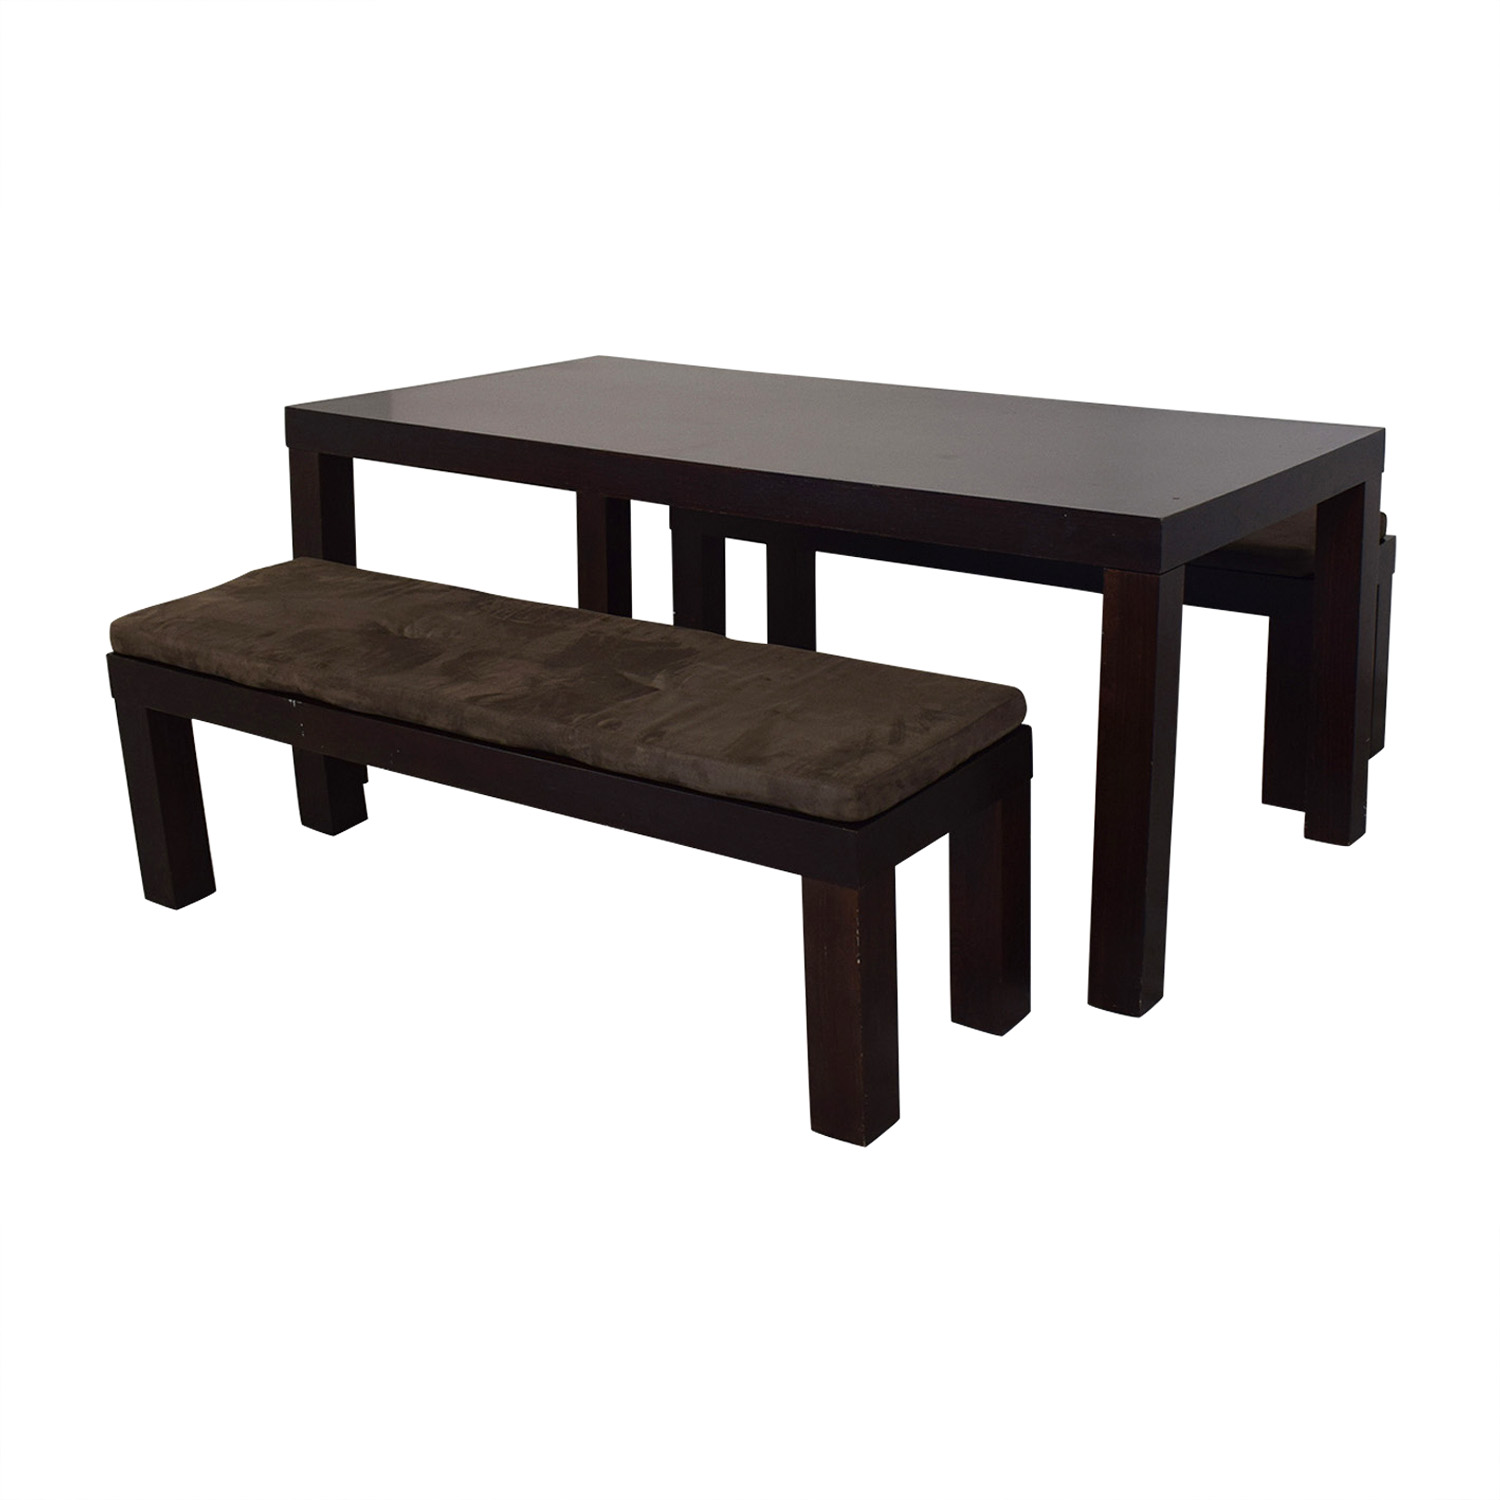 buy CB2 CB2 Indie Dining Table with Benches online